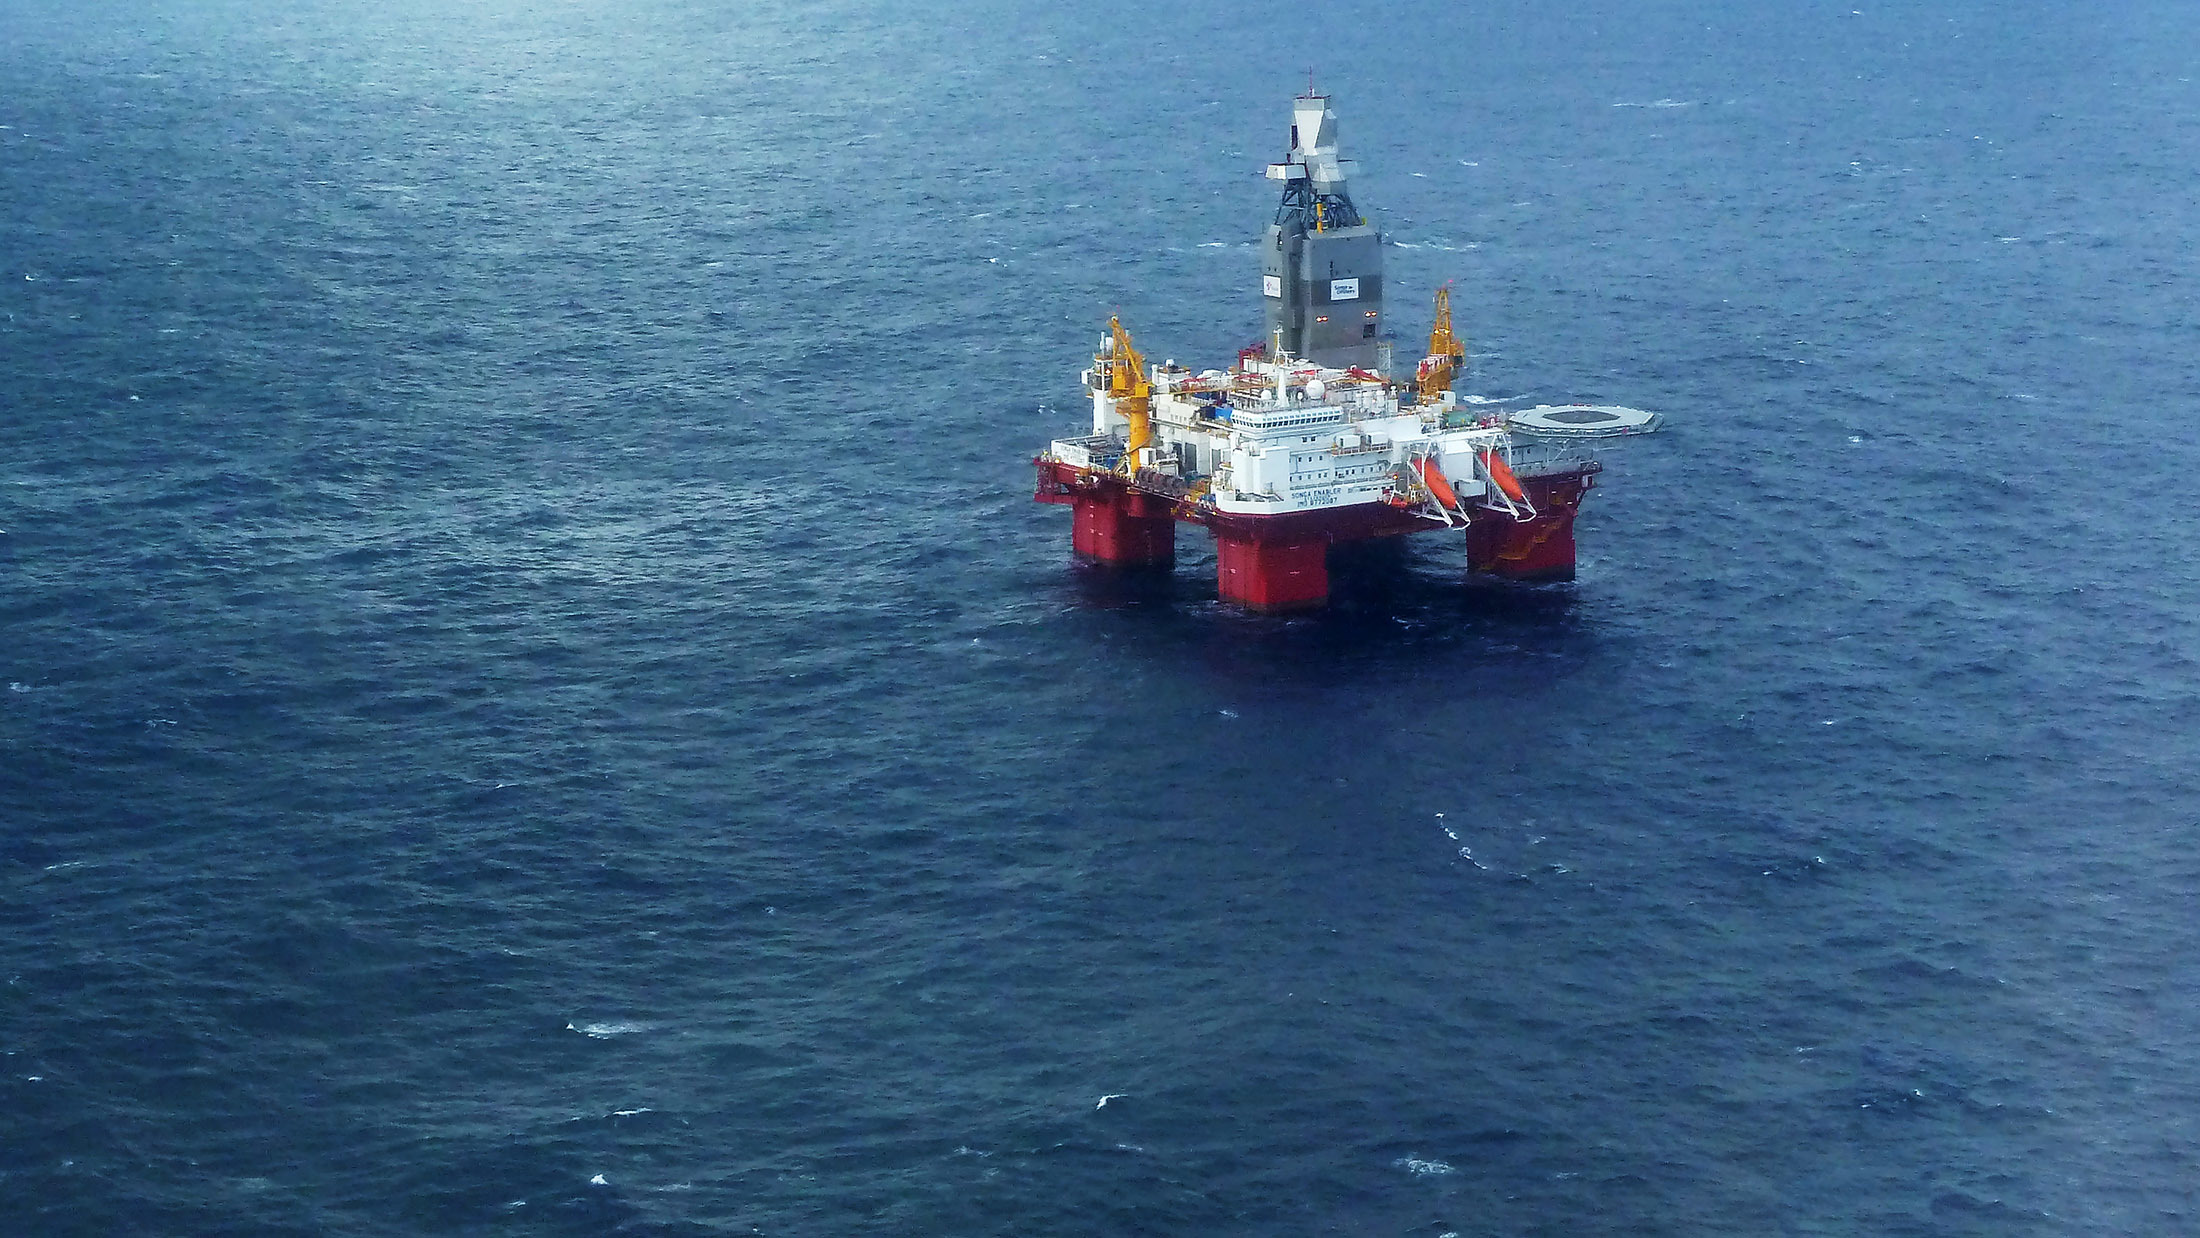 Statoil plans to step up exploration after driving down costs